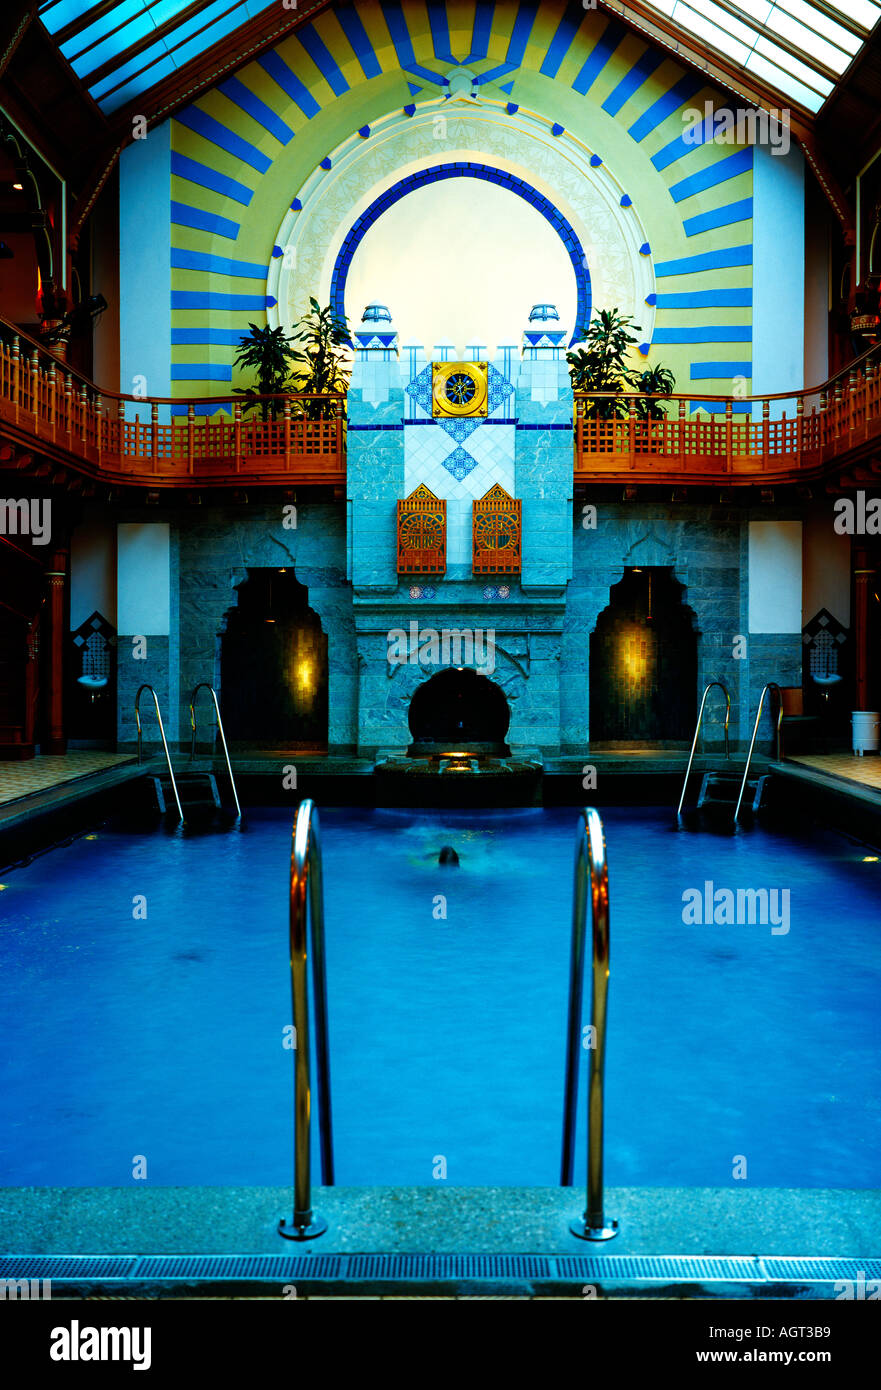 A pool area in a Swedish spa hotel in Stockholm - Stock Image